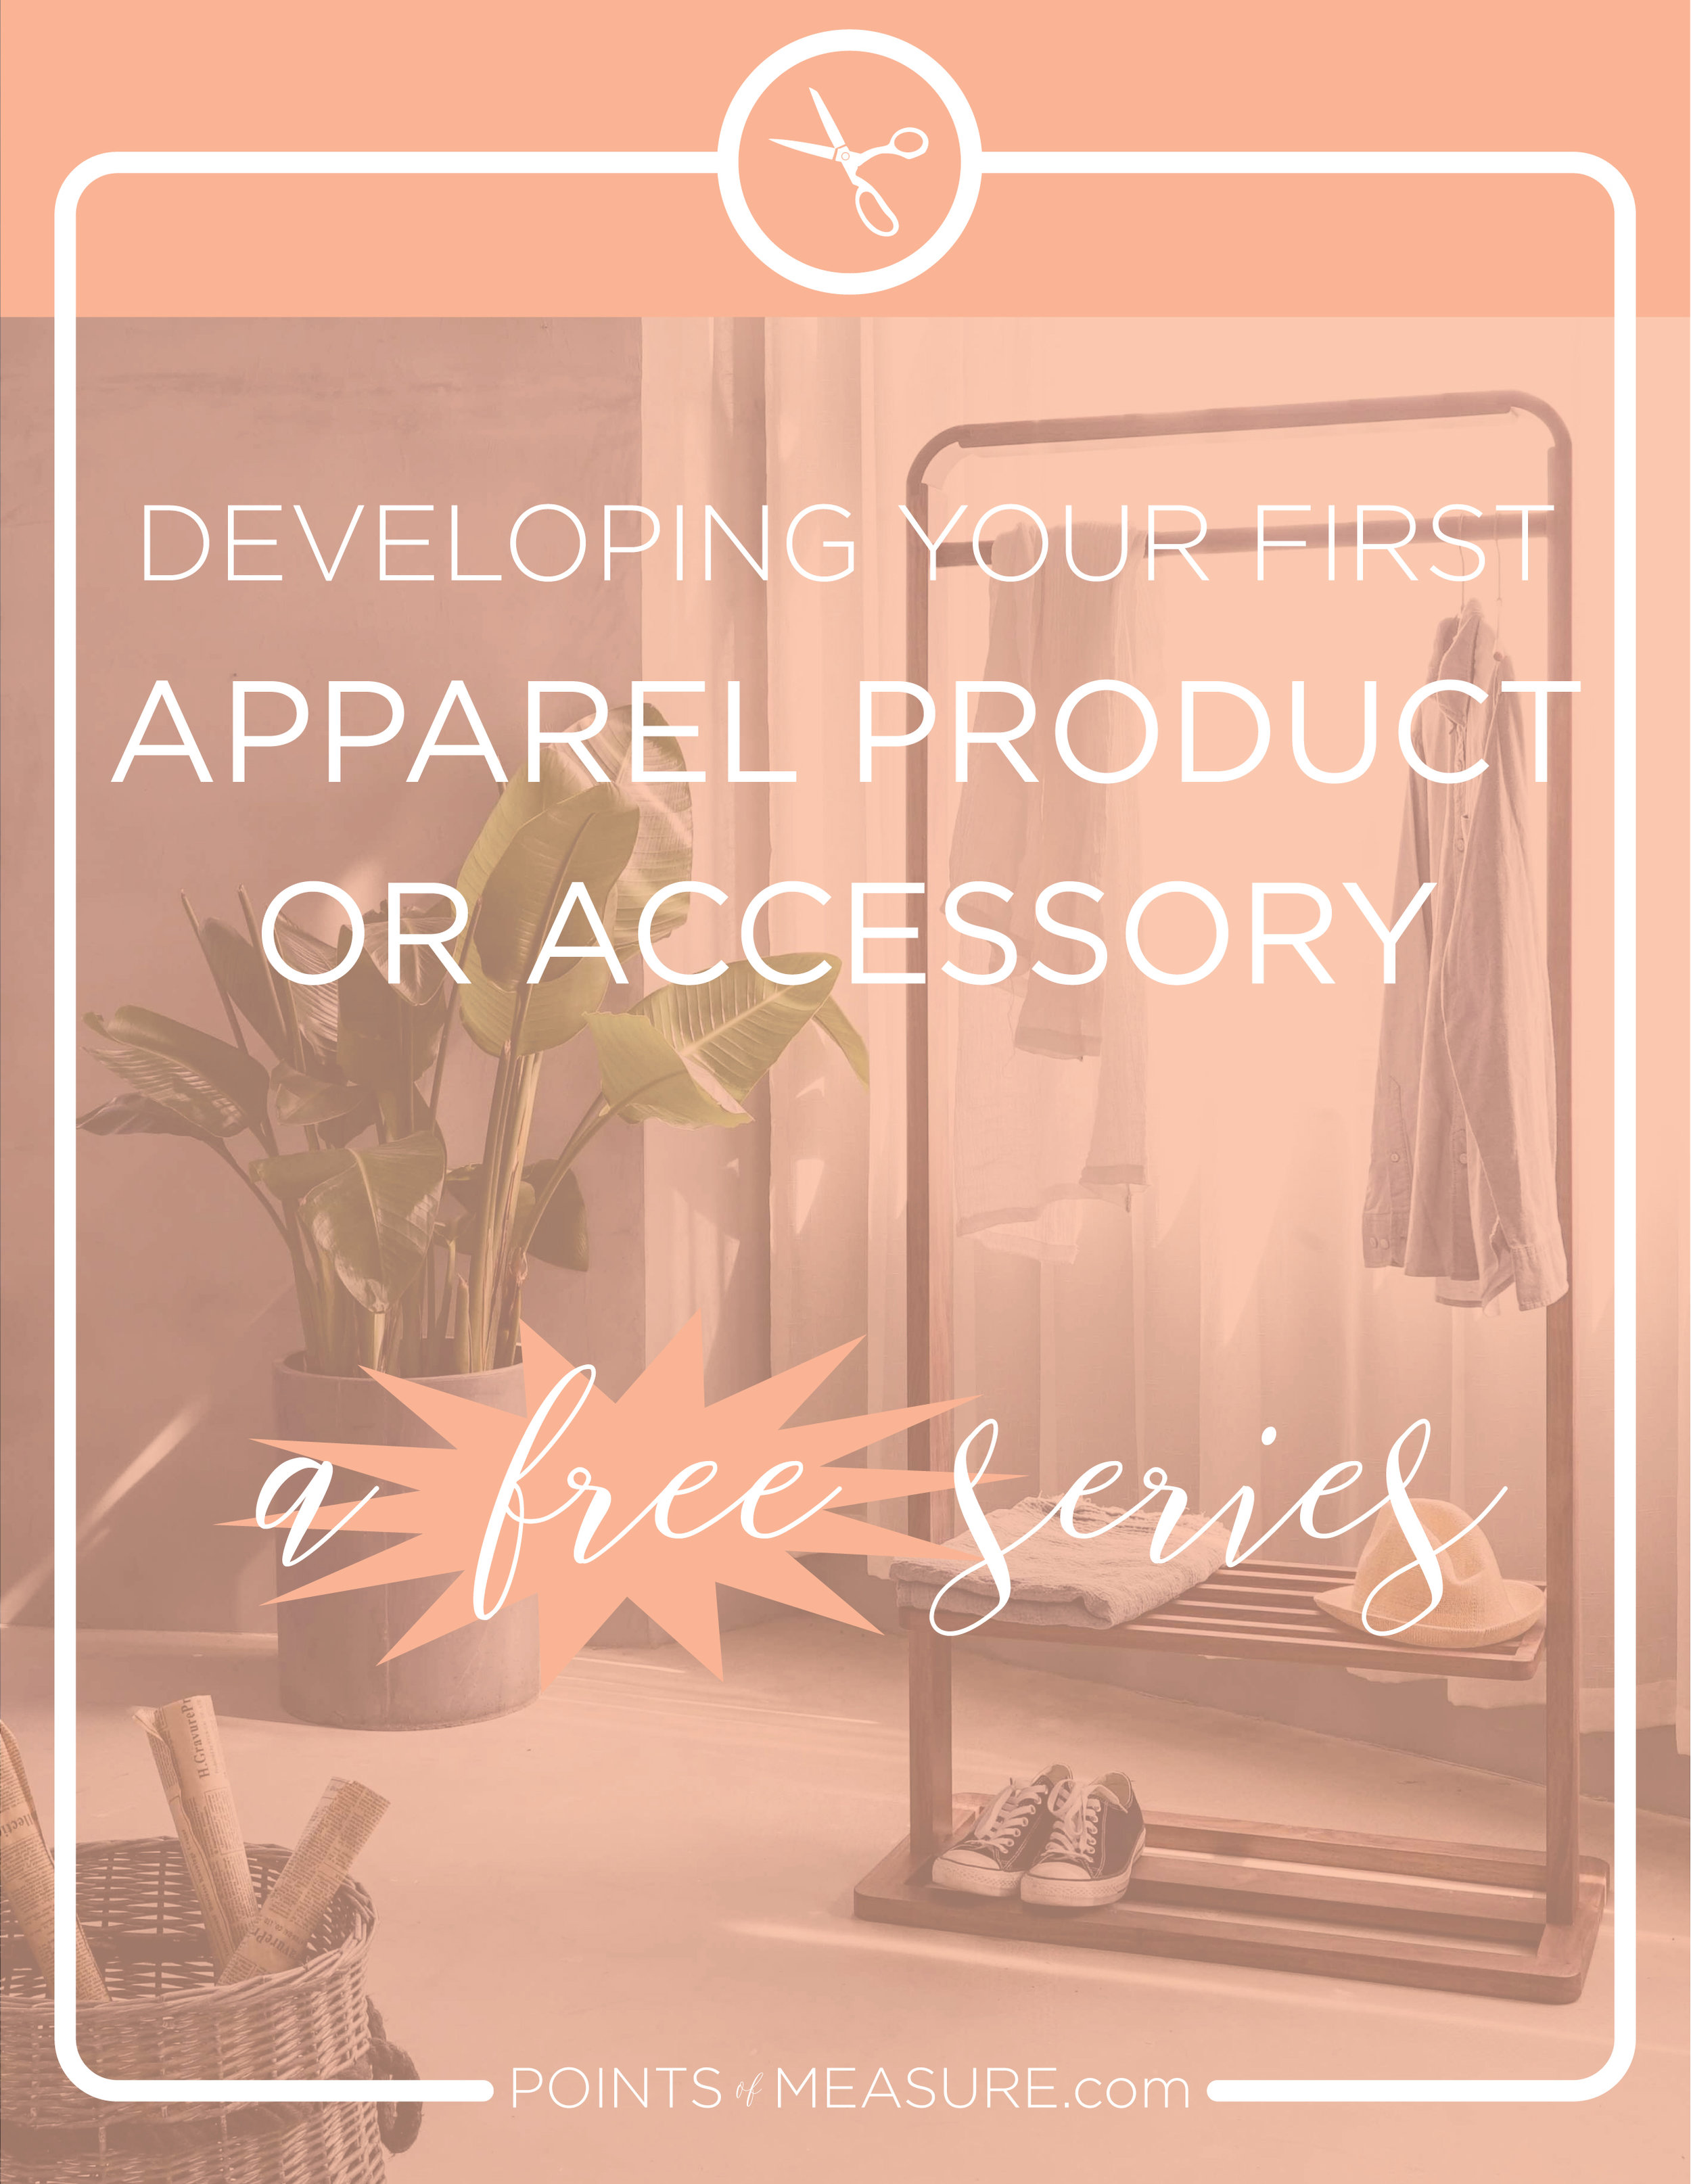 developing-your-first-apparel-product-or-accessory-points-of-measure.jpg